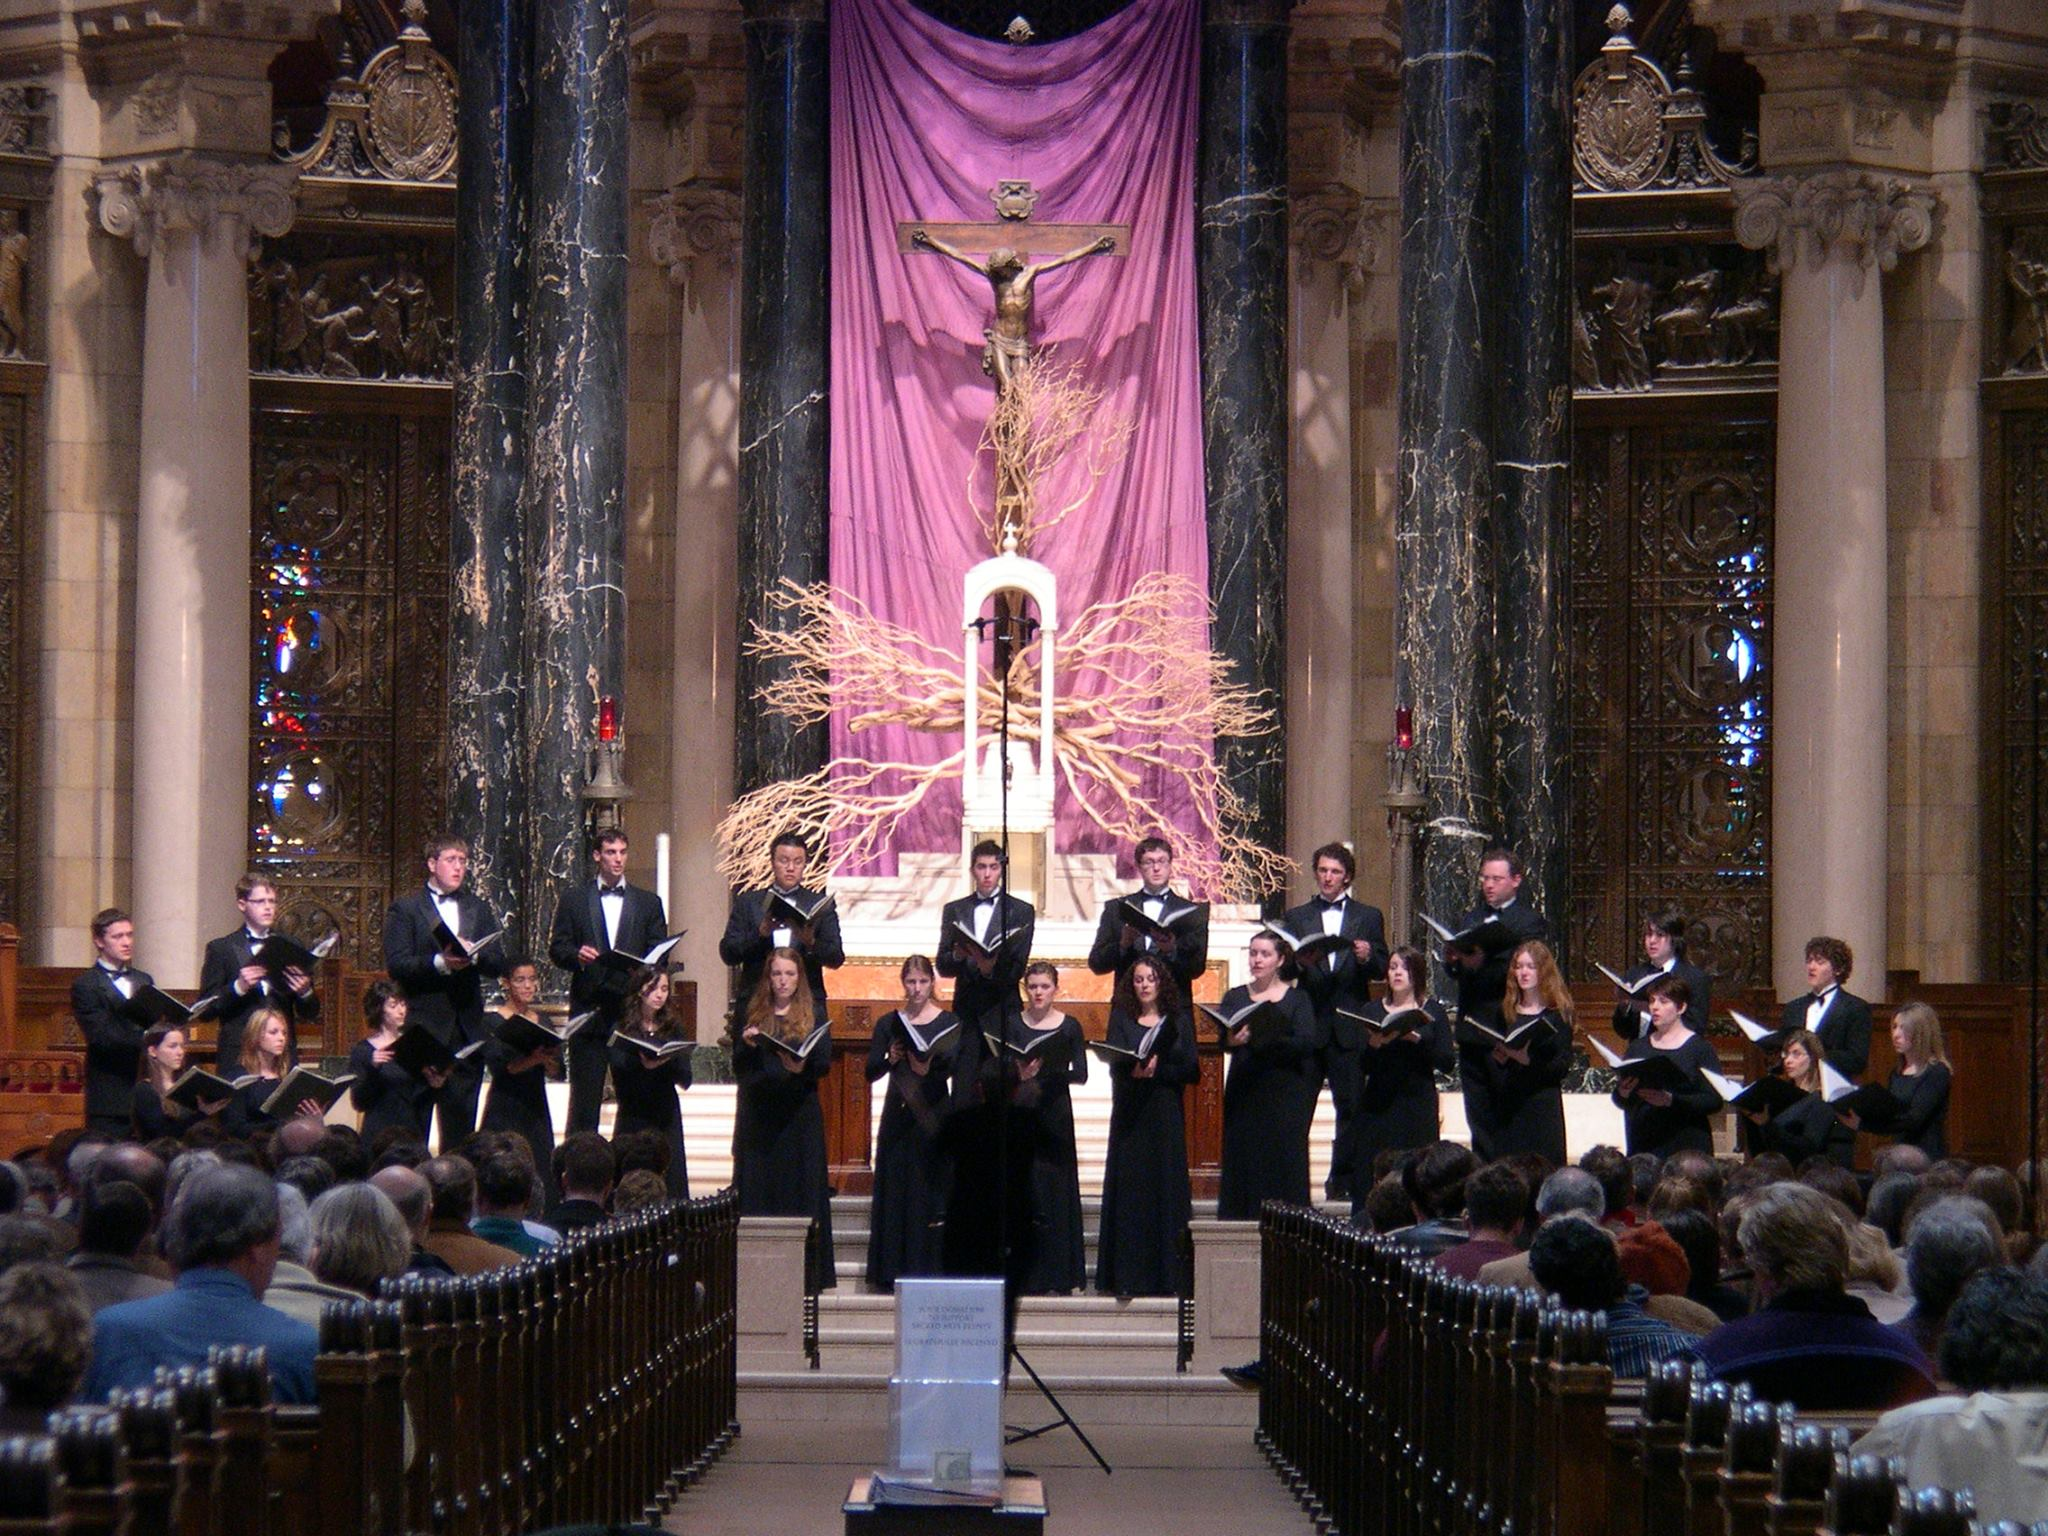 CONCERT: Music for a Grand Space  Sunday, March 3 at 2:30 p.m.